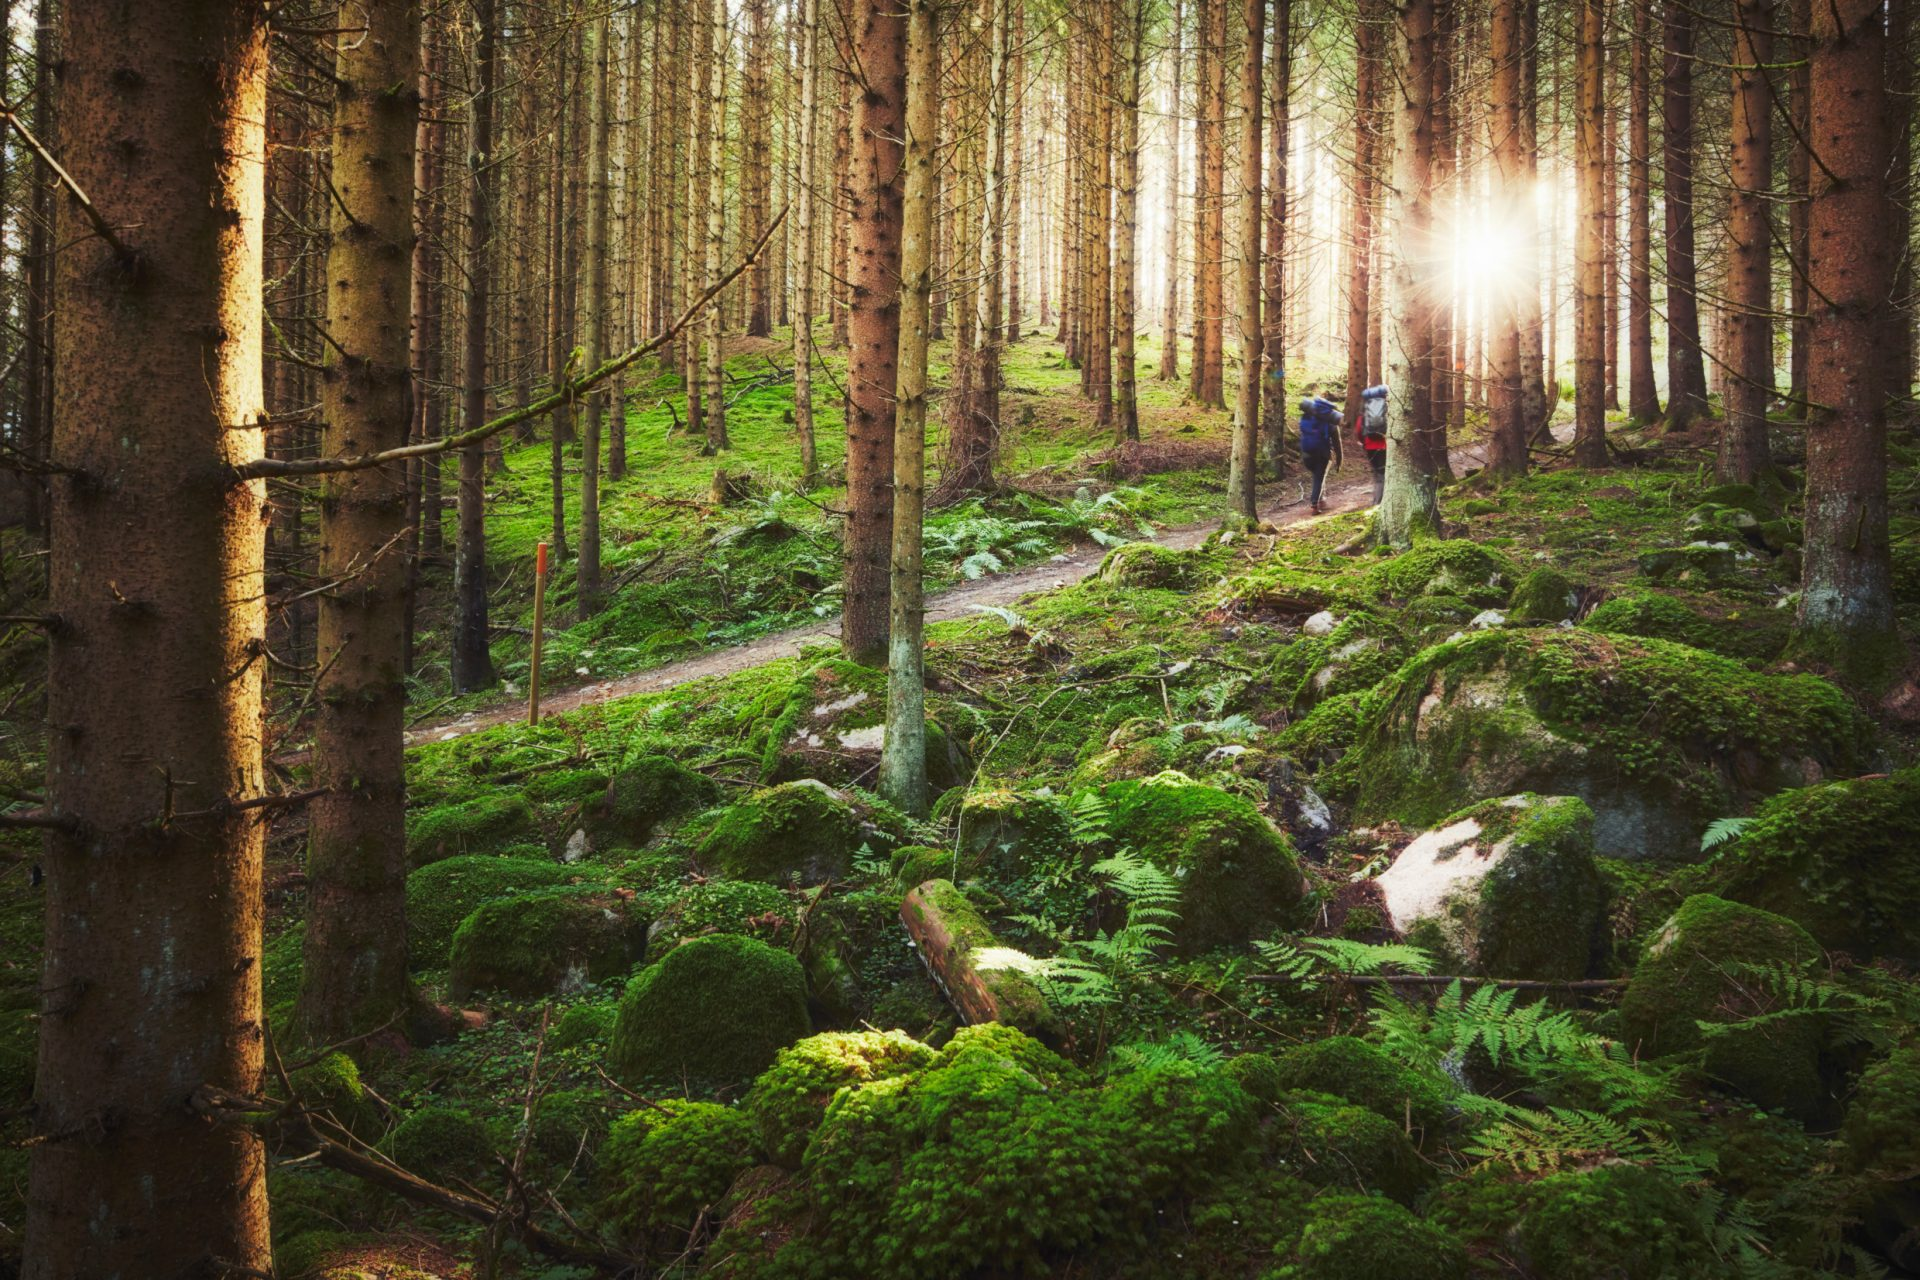 patrik_svedberg-hiking_in_the_forest-6428